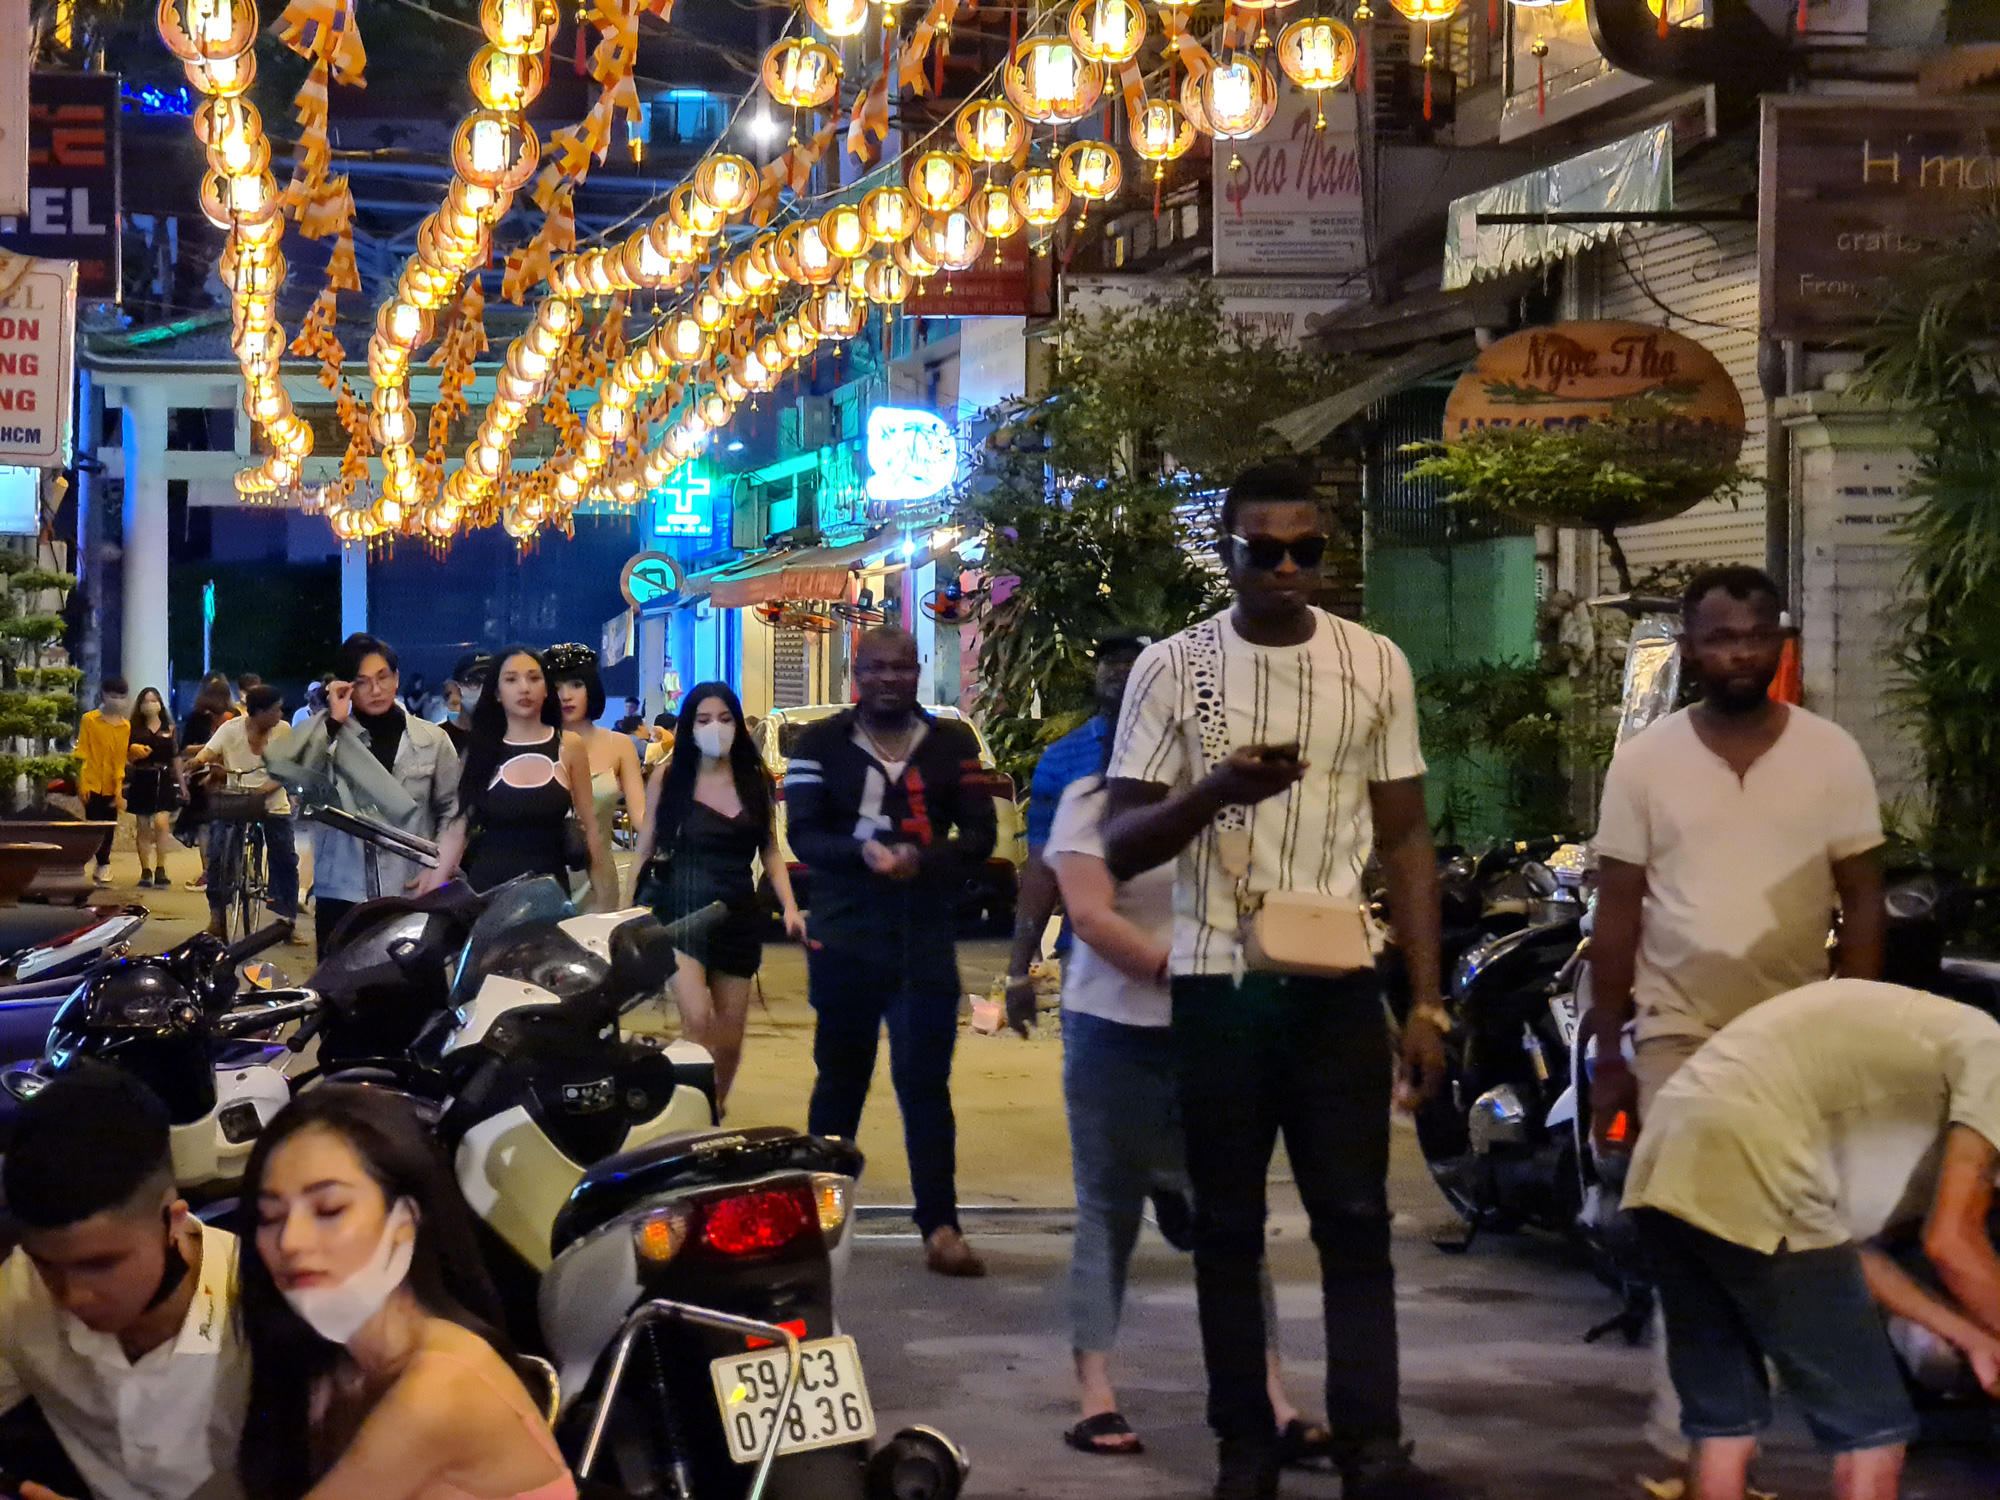 Ho Chi Minh City's 'backpacker area' bustling again as bars reopen